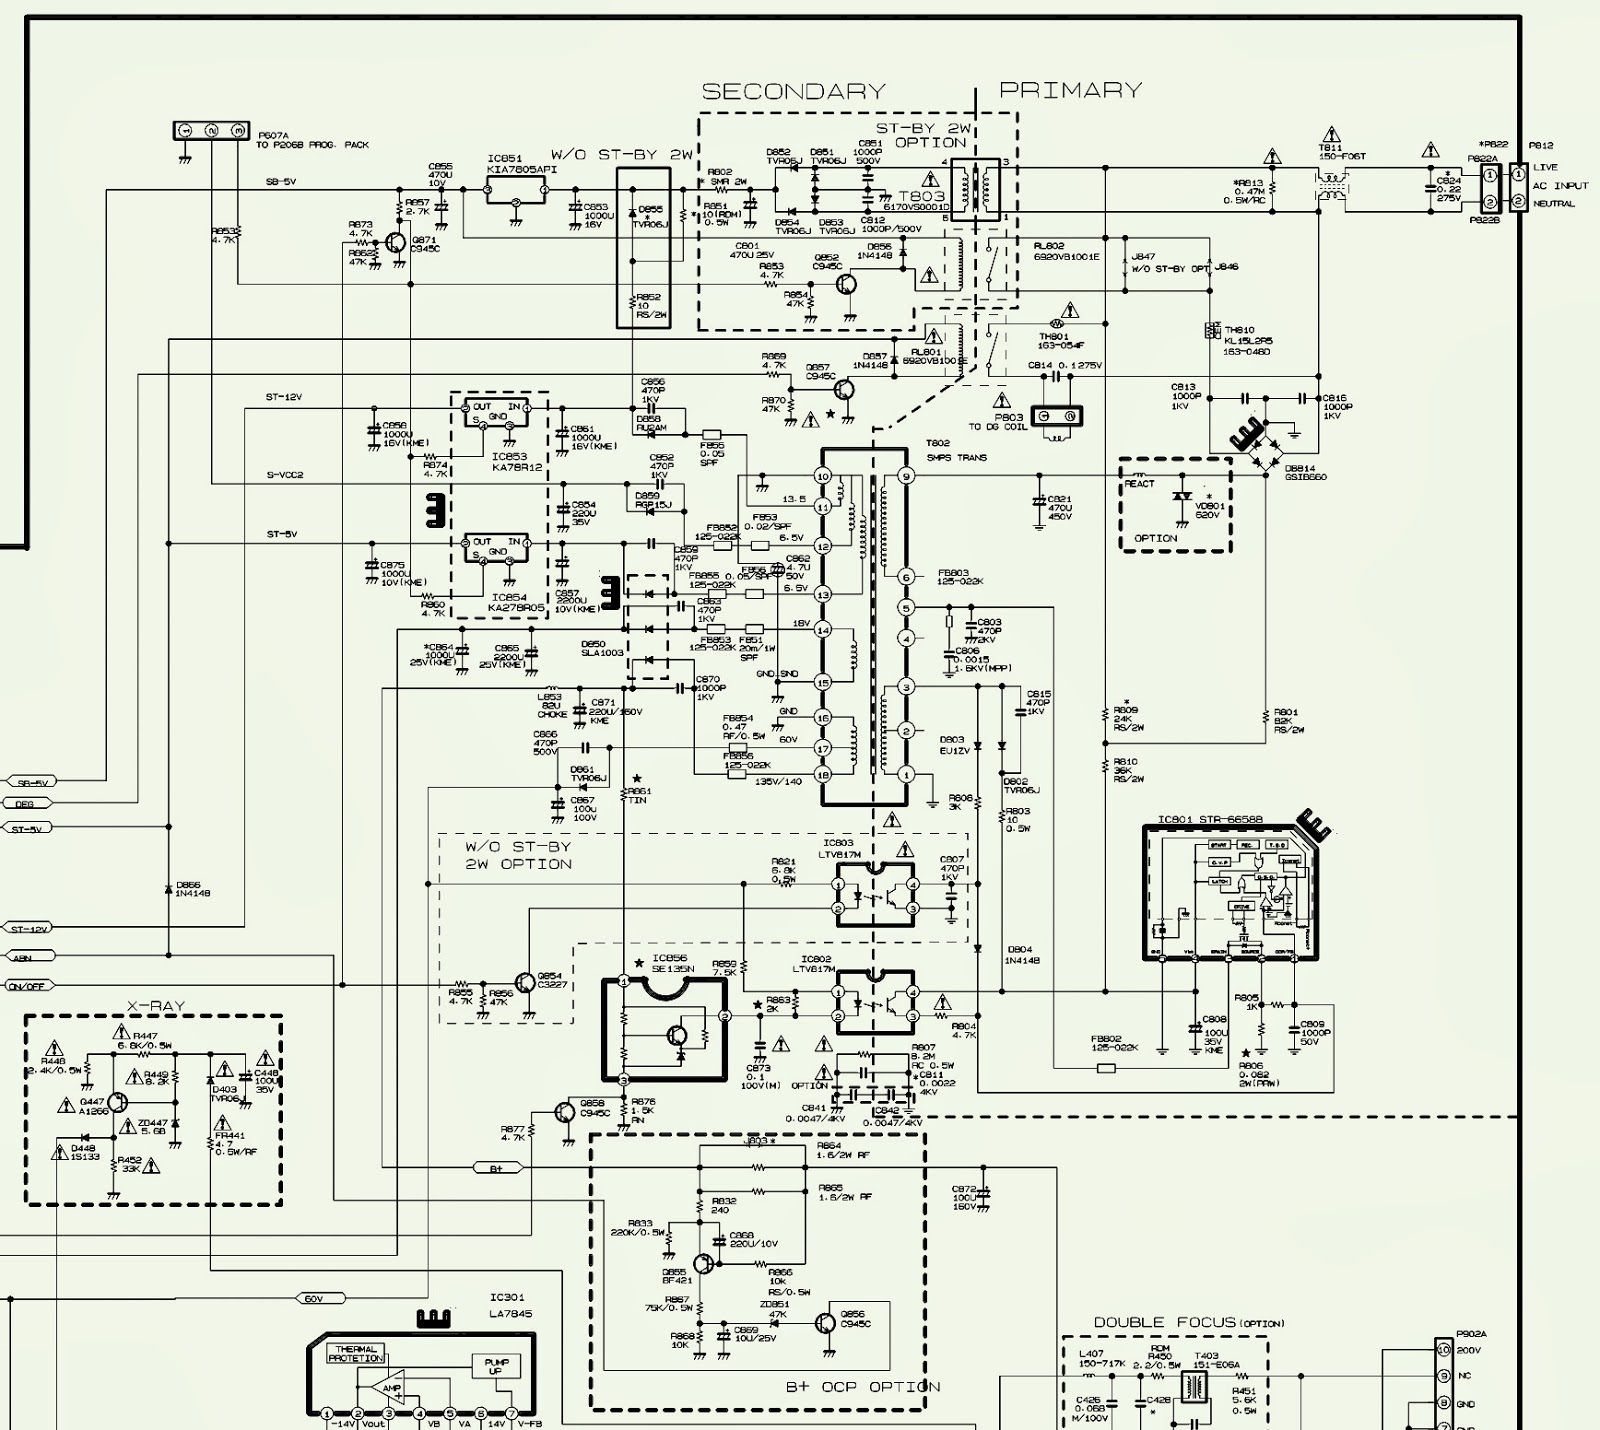 hight resolution of sansui tv circuit diagram free download circuit diagram images samsung tv circuit diagram group picture image by tag